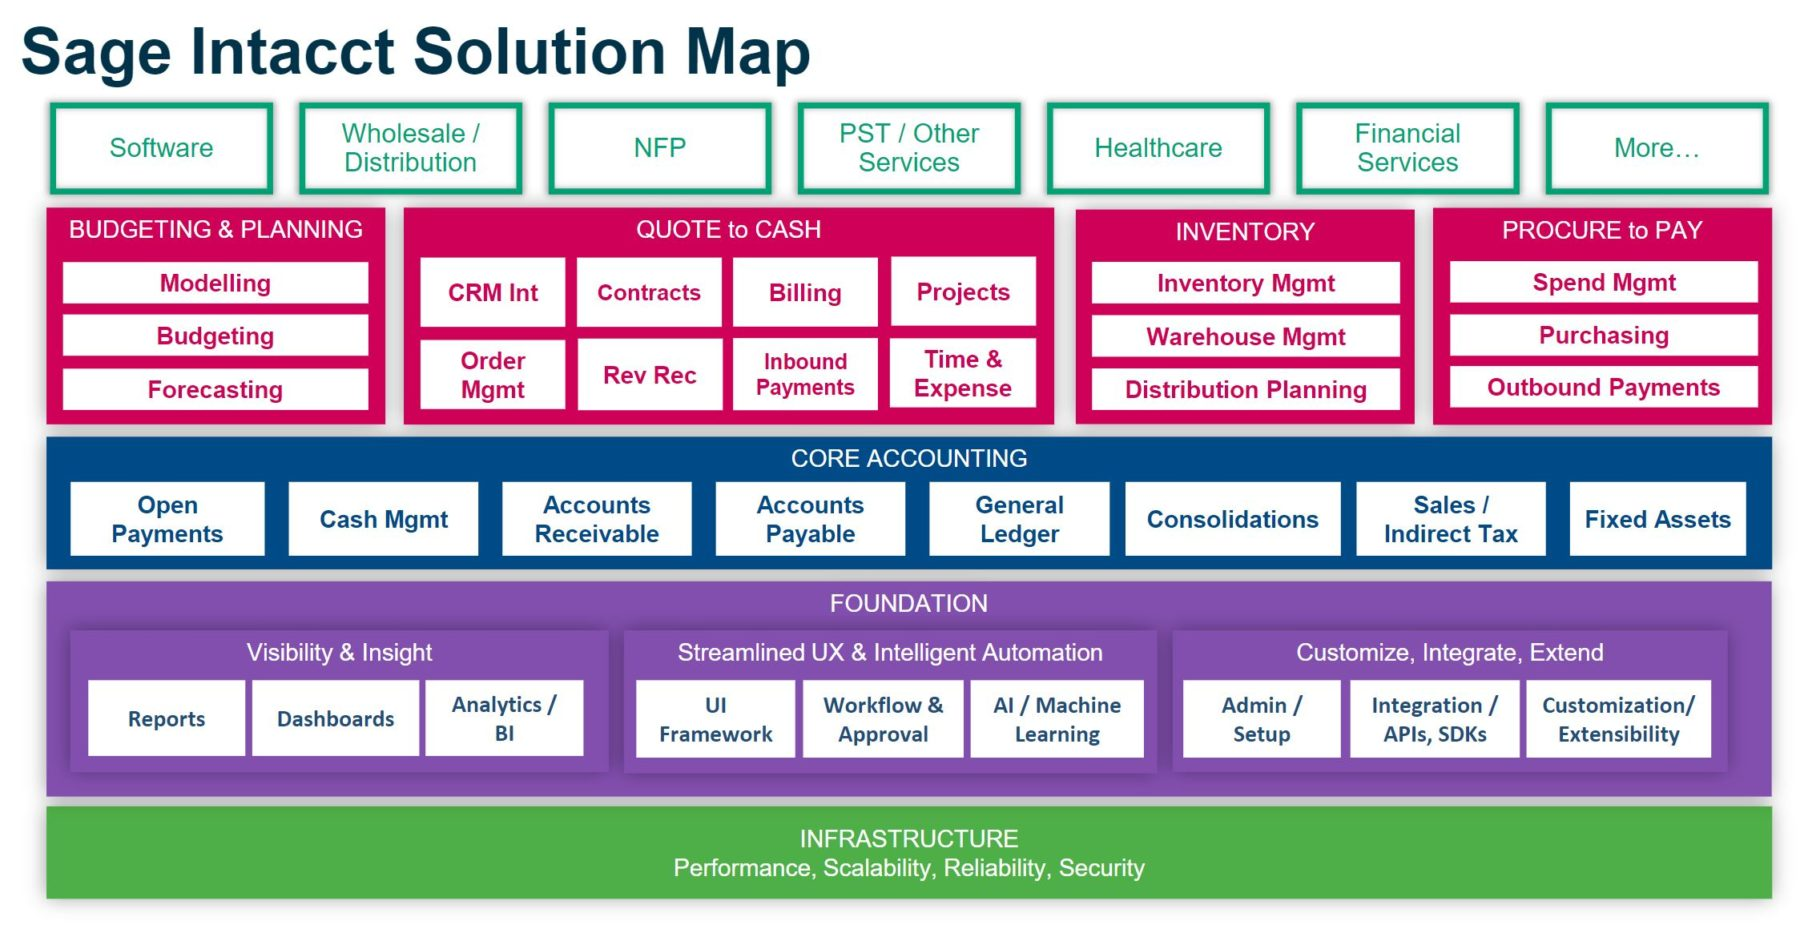 Sage Intacct Solution Map